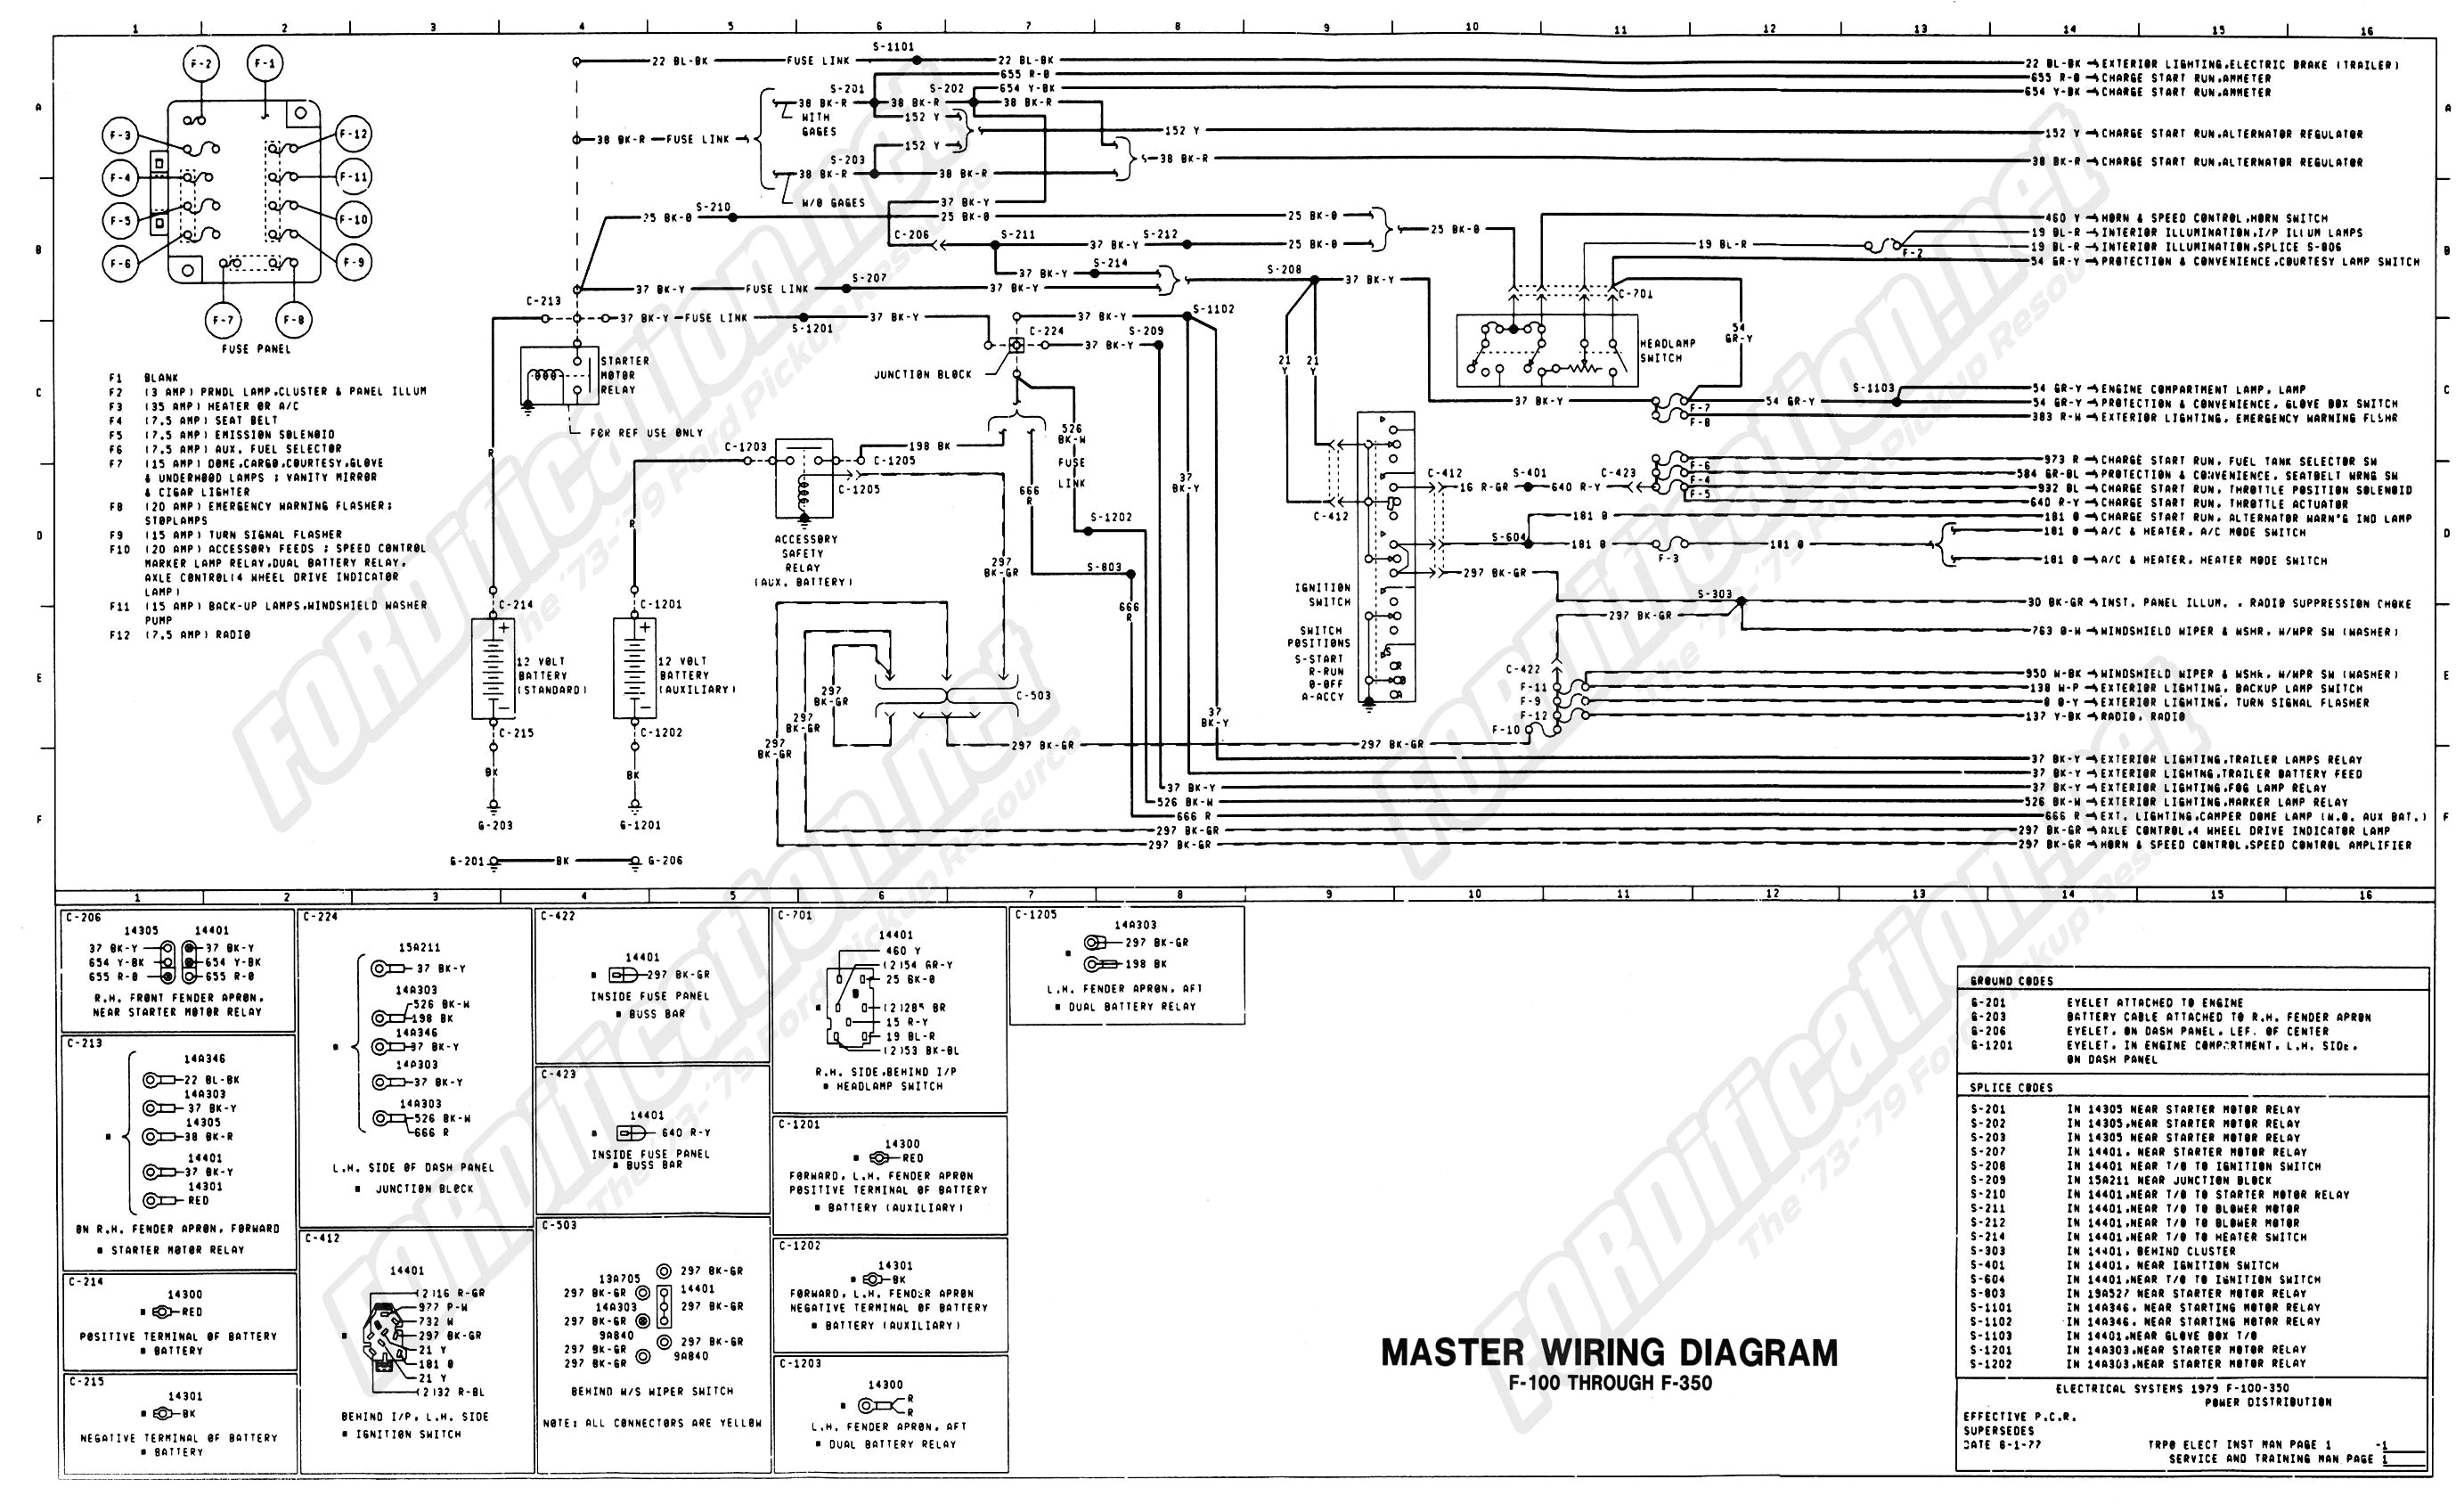 79 f150 fuse diagram ford truck enthusiasts forums blog wiring diagram 79 f150 fuse box wiring